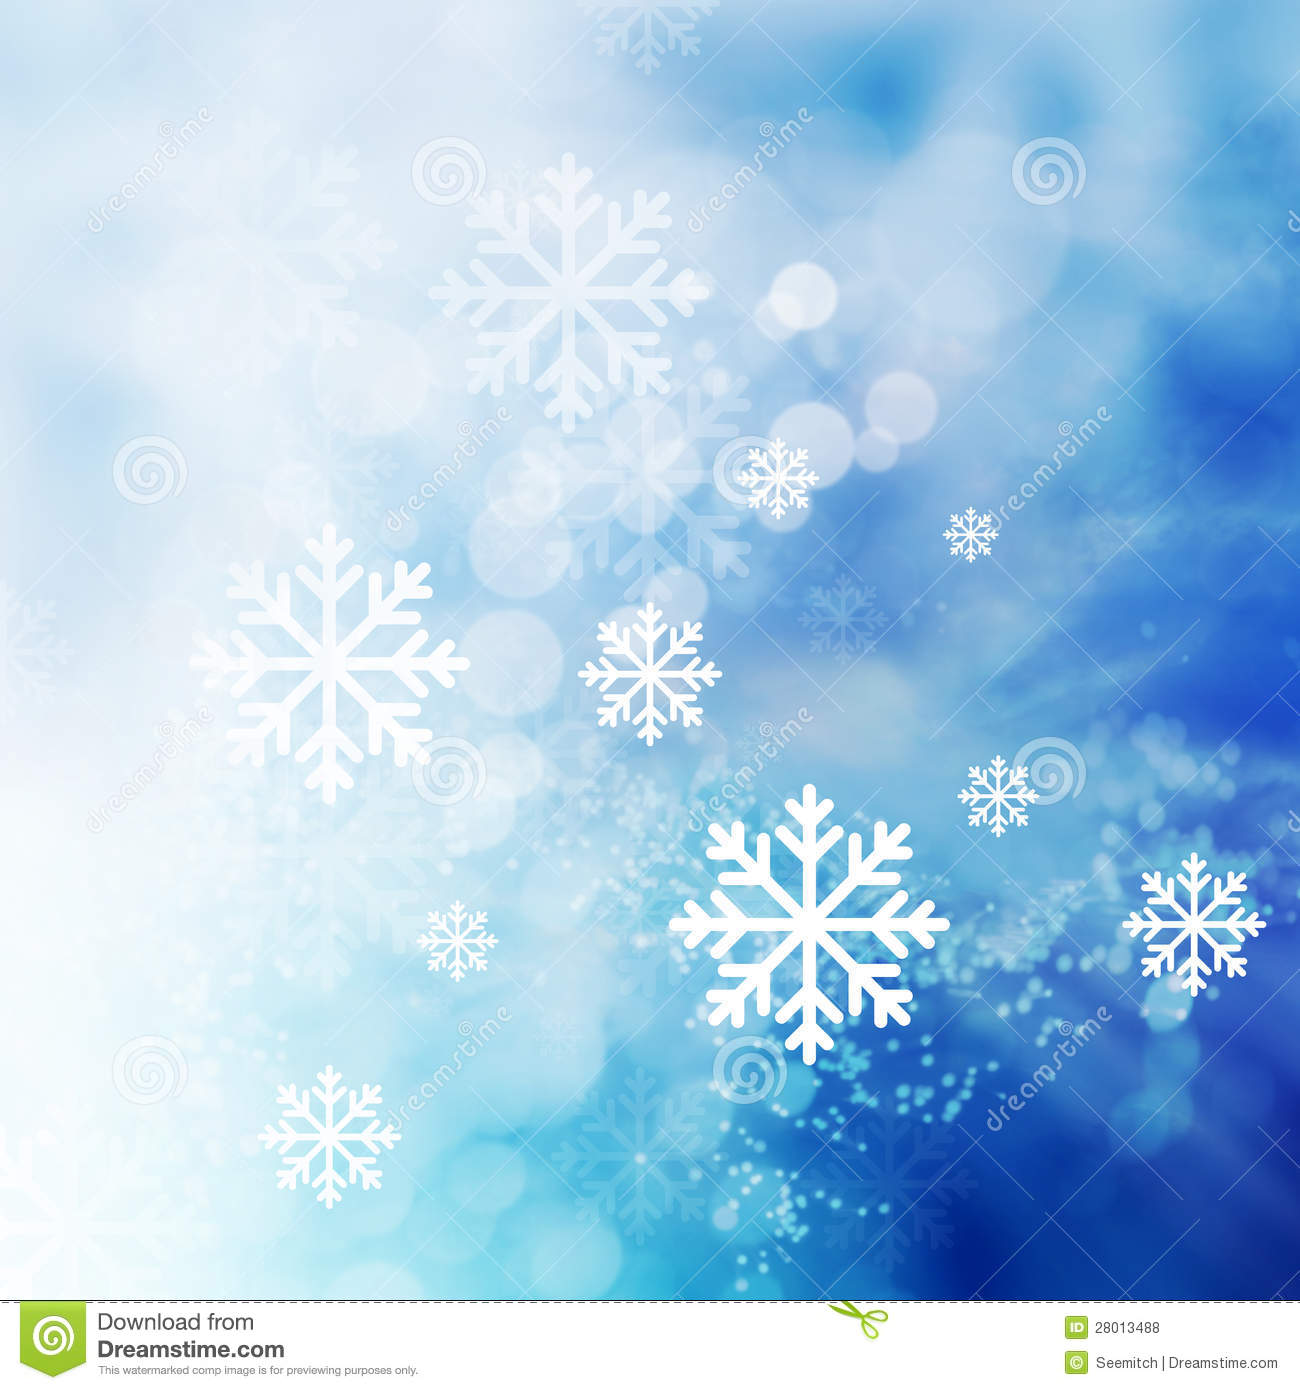 abstract winter background free - photo #38